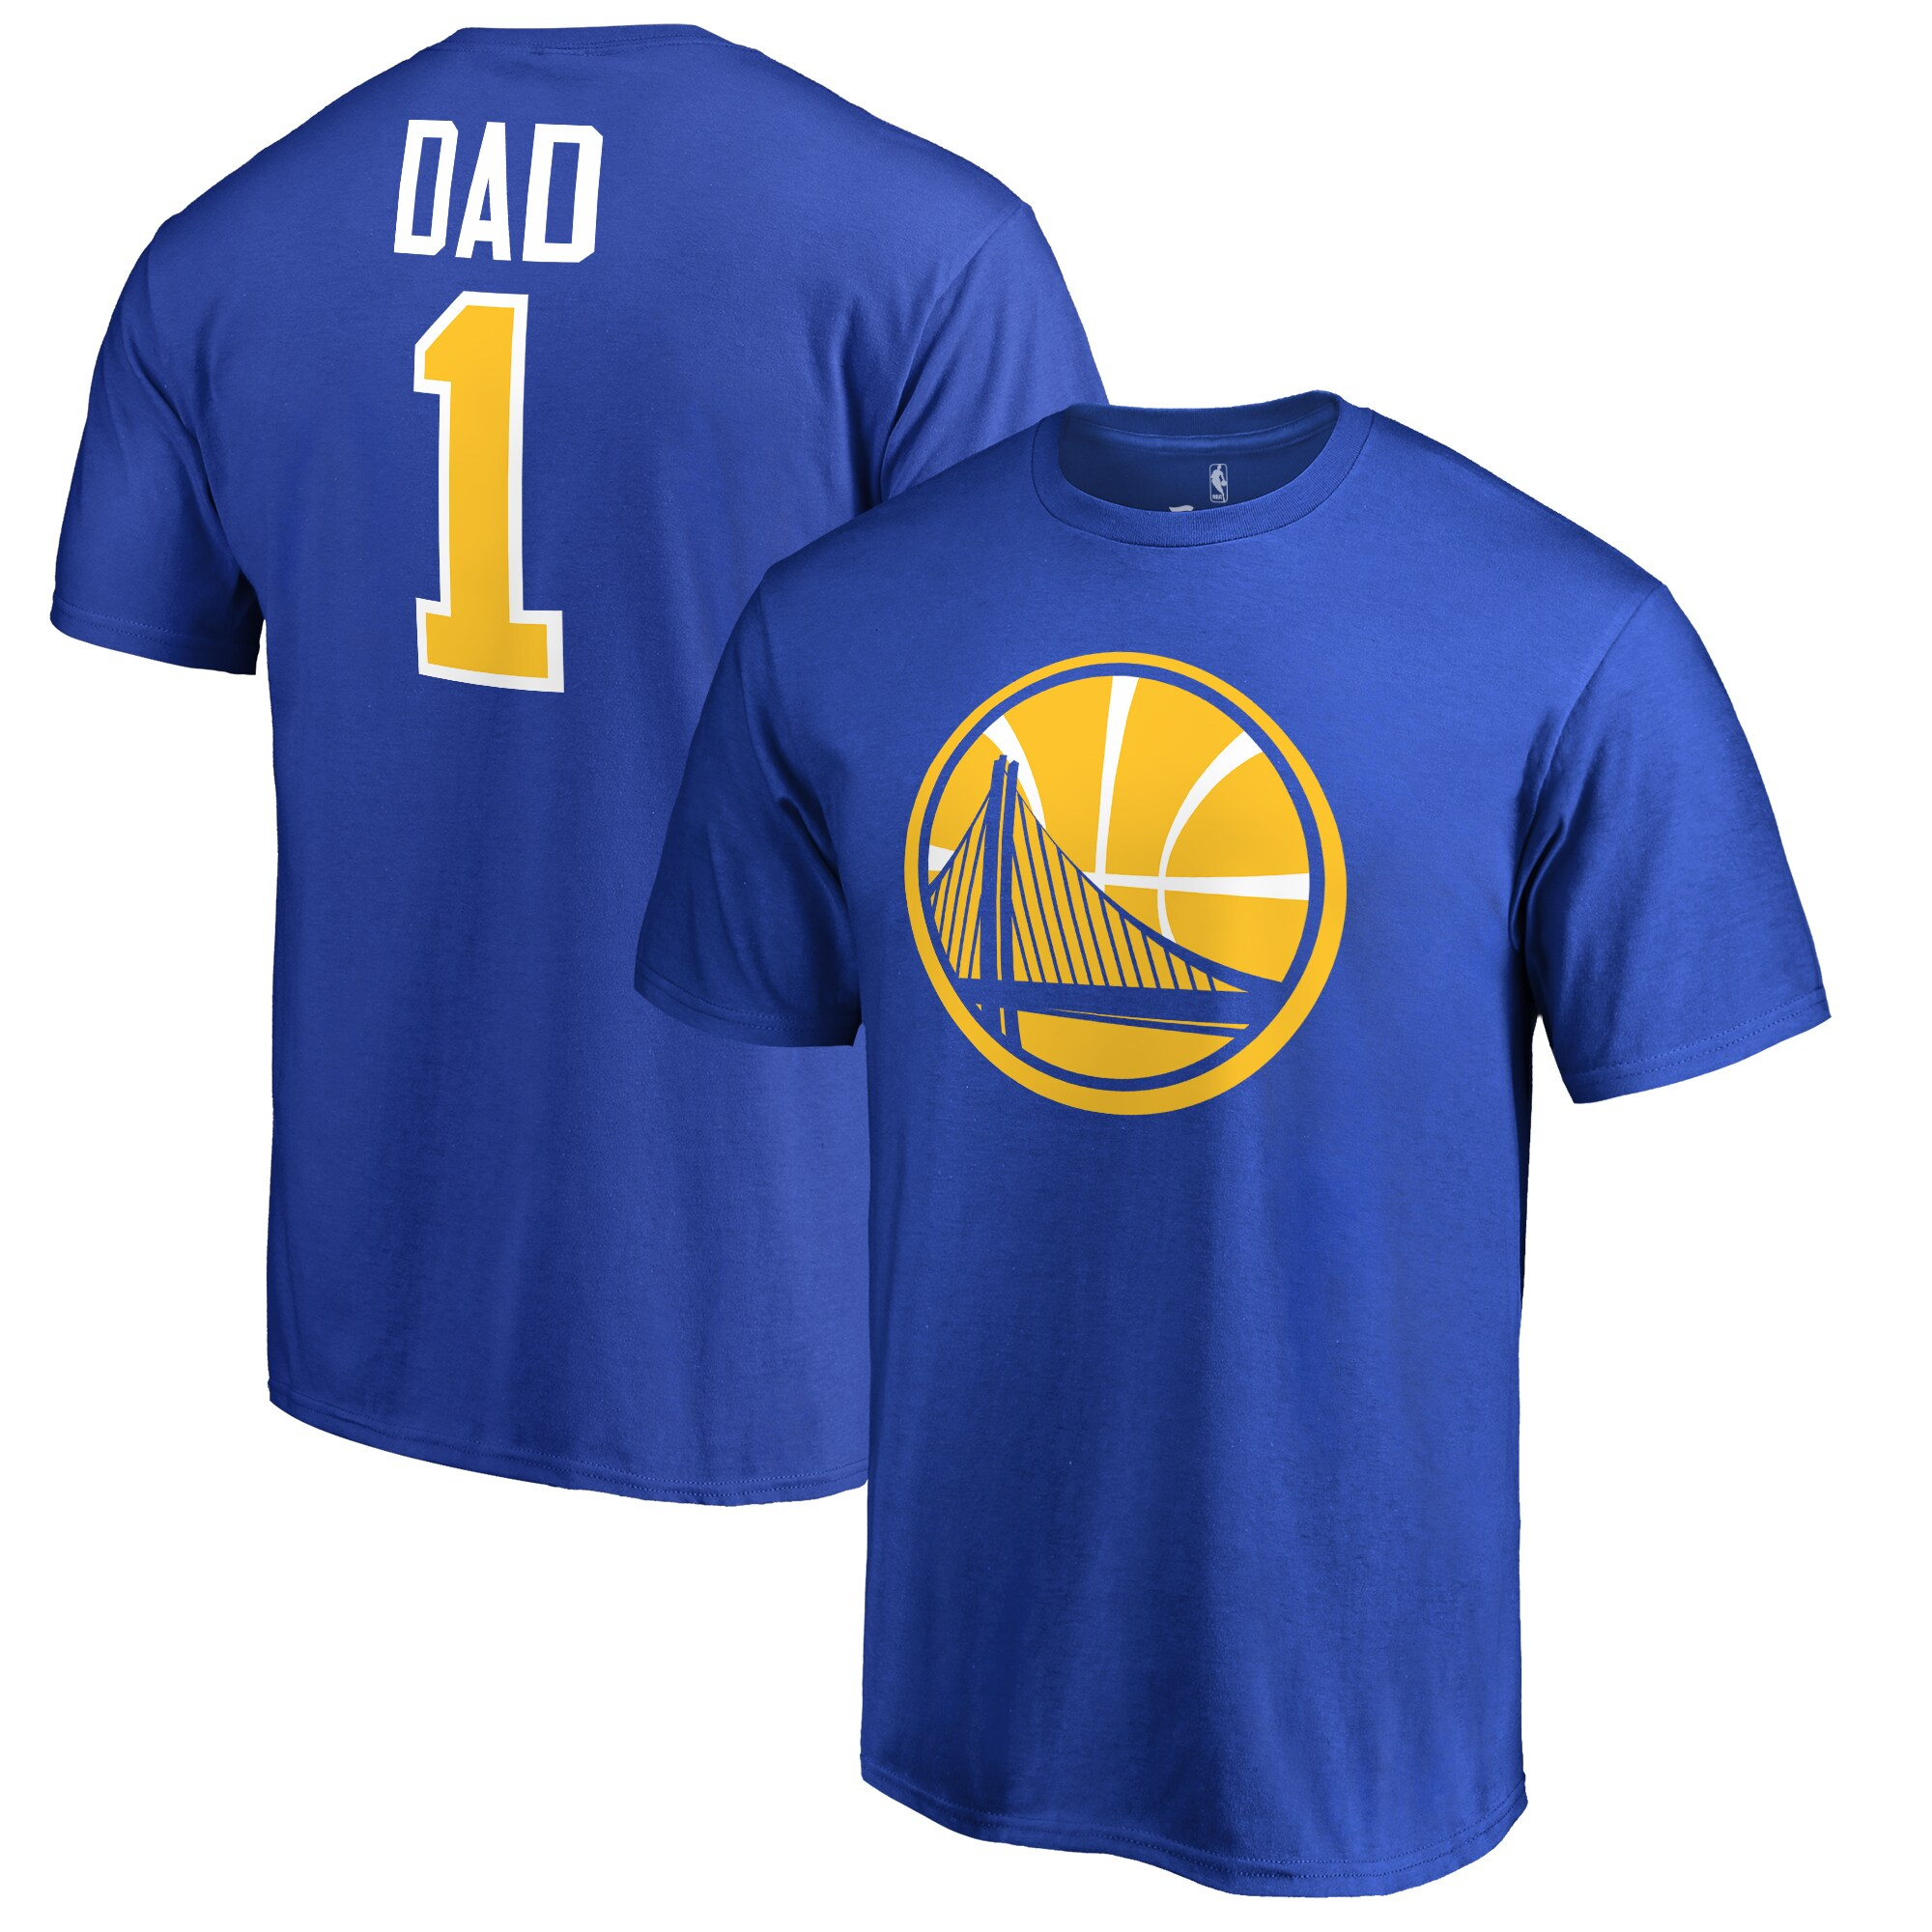 Golden State Warriors Fanatics Branded Big & Tall #1 Dad T-Shirt - Blue